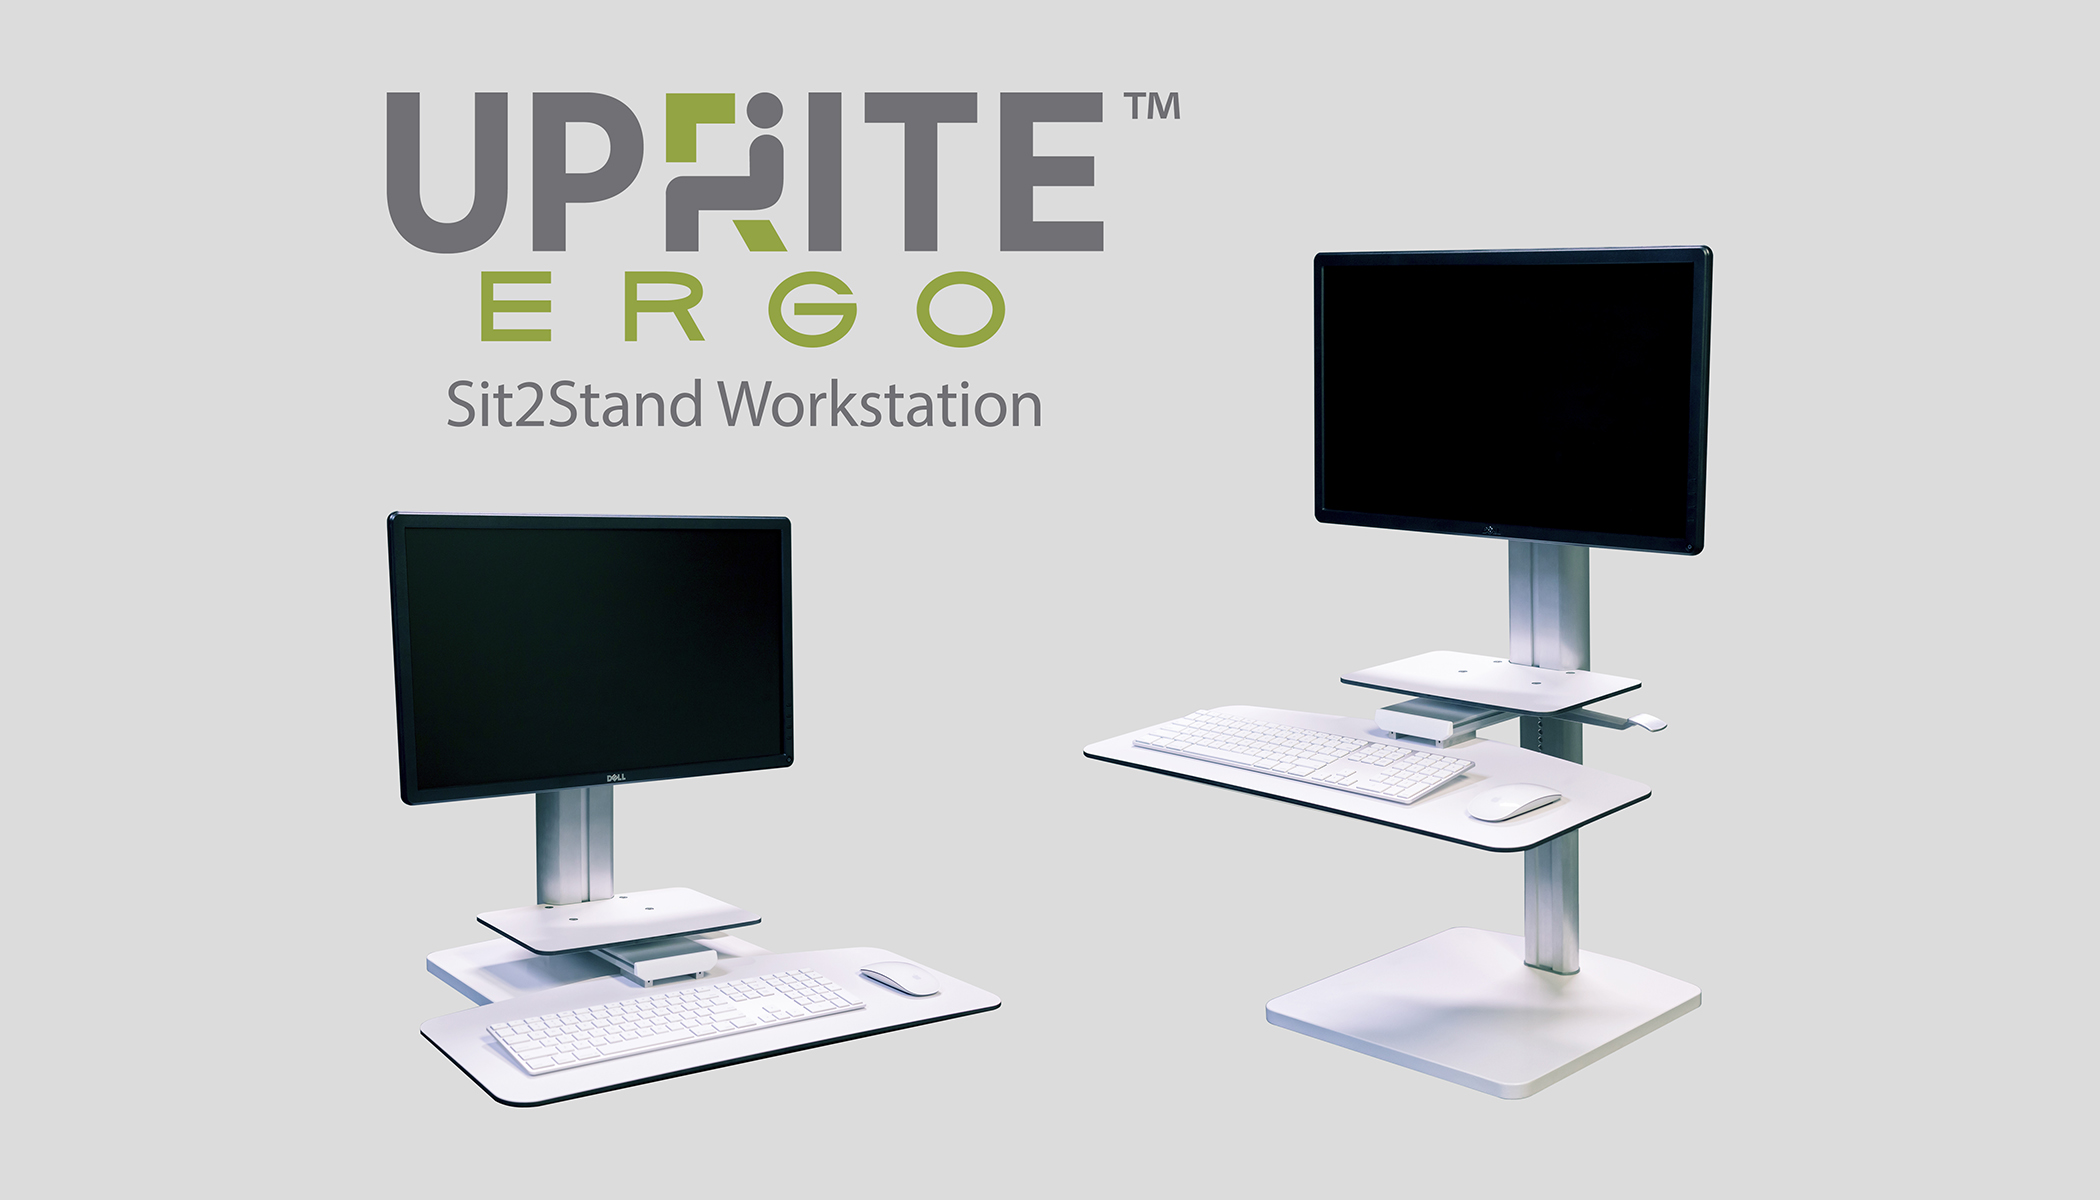 for design pleasurable strikingly stands reviews computer in sit user ideas ergonomic stand fancy astounding up ergo of luxor monitor mobile and demand desk